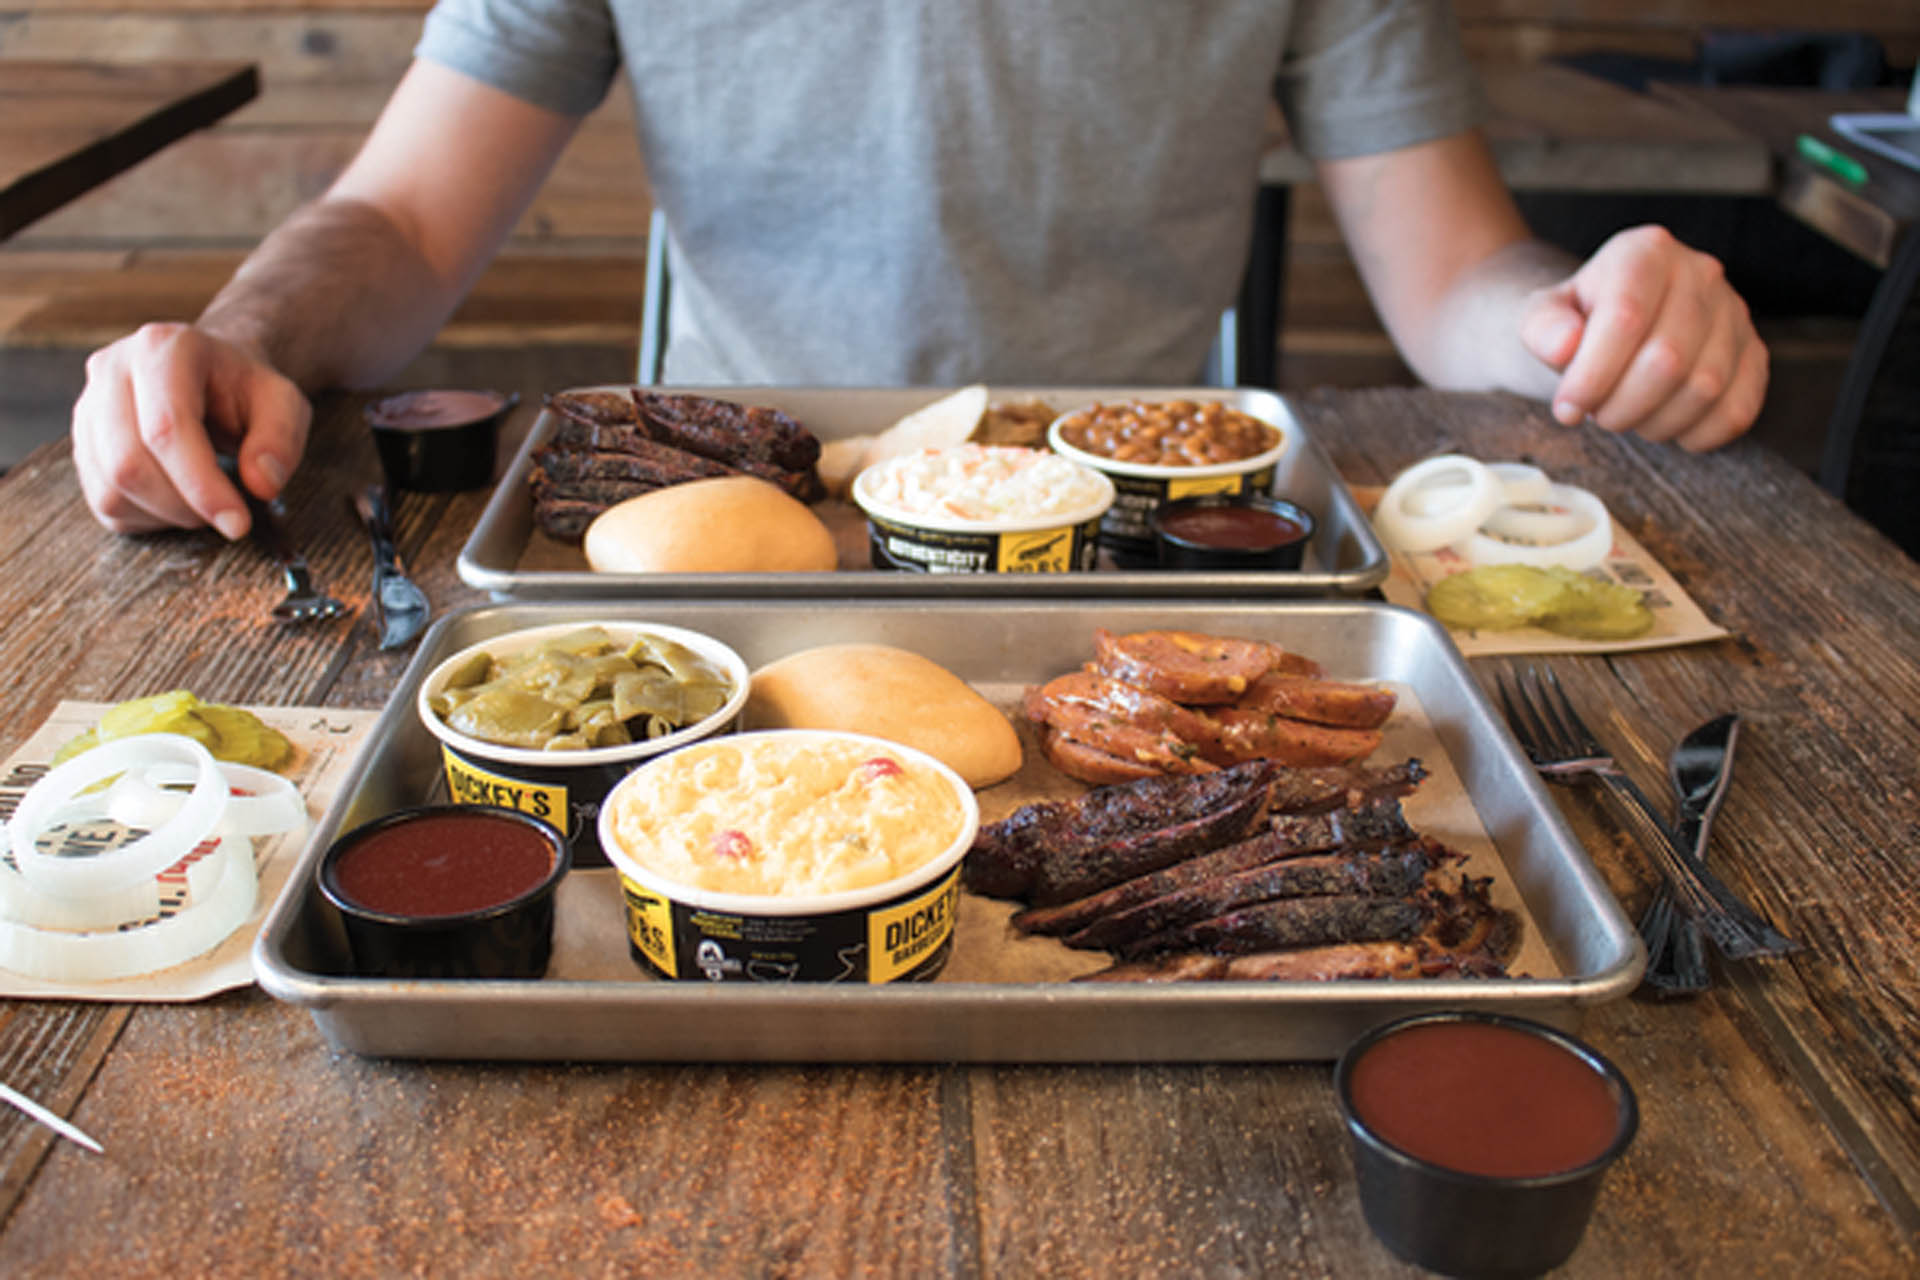 Dickey's Barbecue Pit: The Nation's Catering Experts